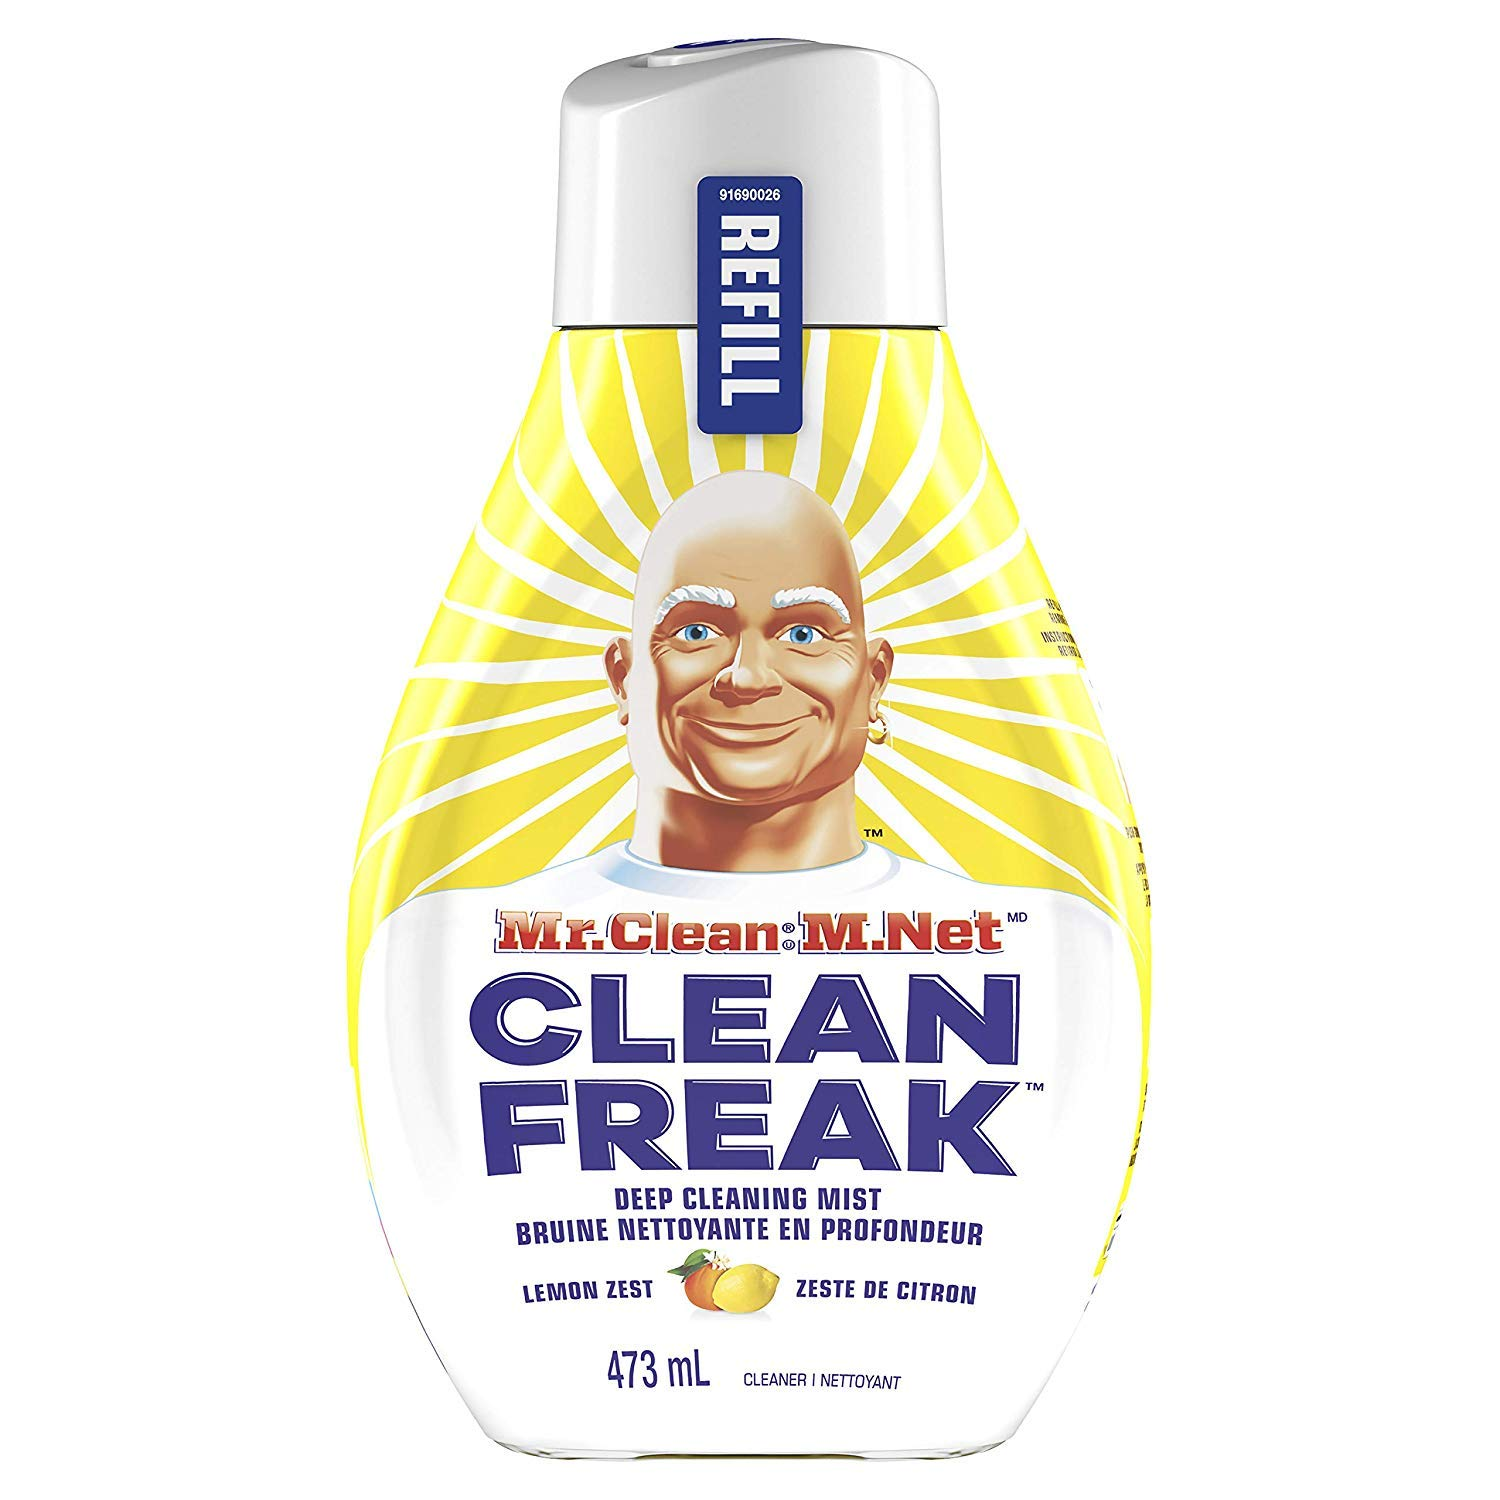 Mr. Clean Freak Deep Cleaning Mist Multi-Surface Spray Lemon Zest Bundle, 1 Starter + 1 Refill by Mr Clean Freak (Image #3)